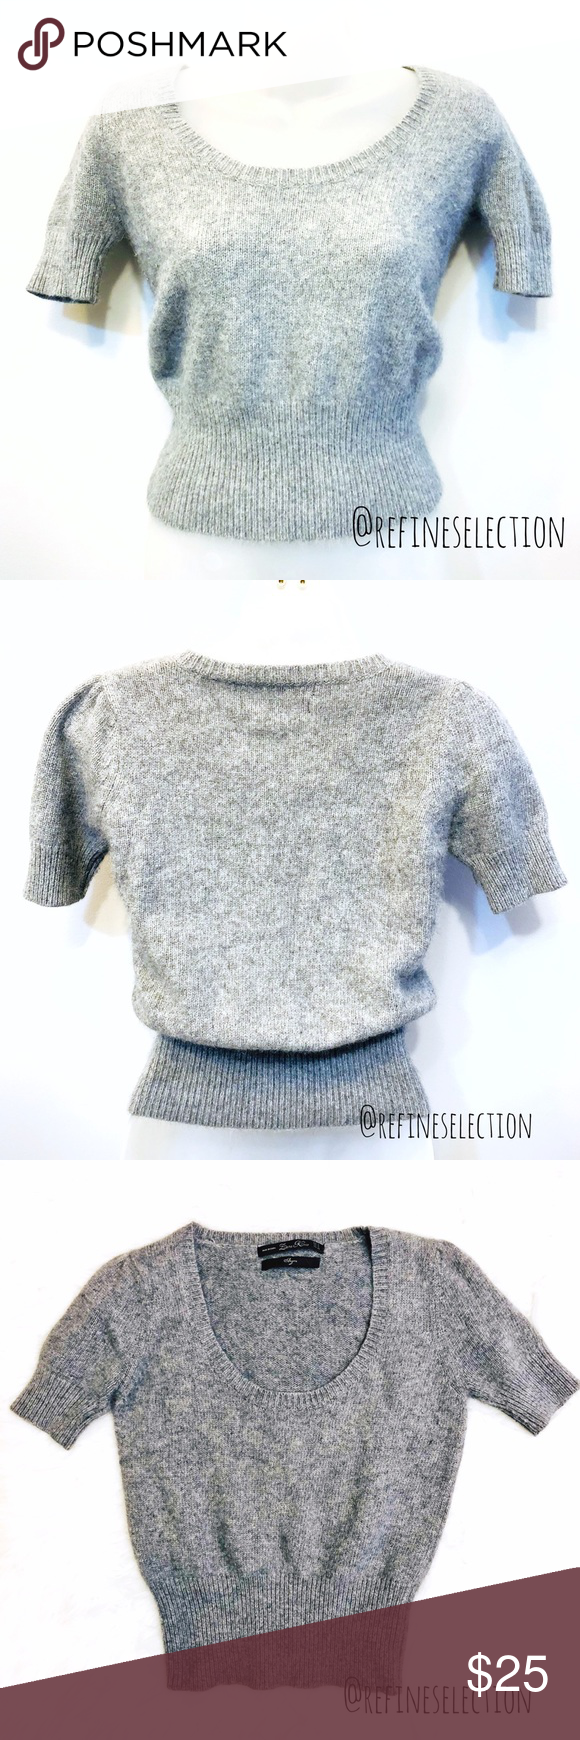 50d7d3245417 Zara Angora Grey Cropped Sweater Pre-loved in excellent condition